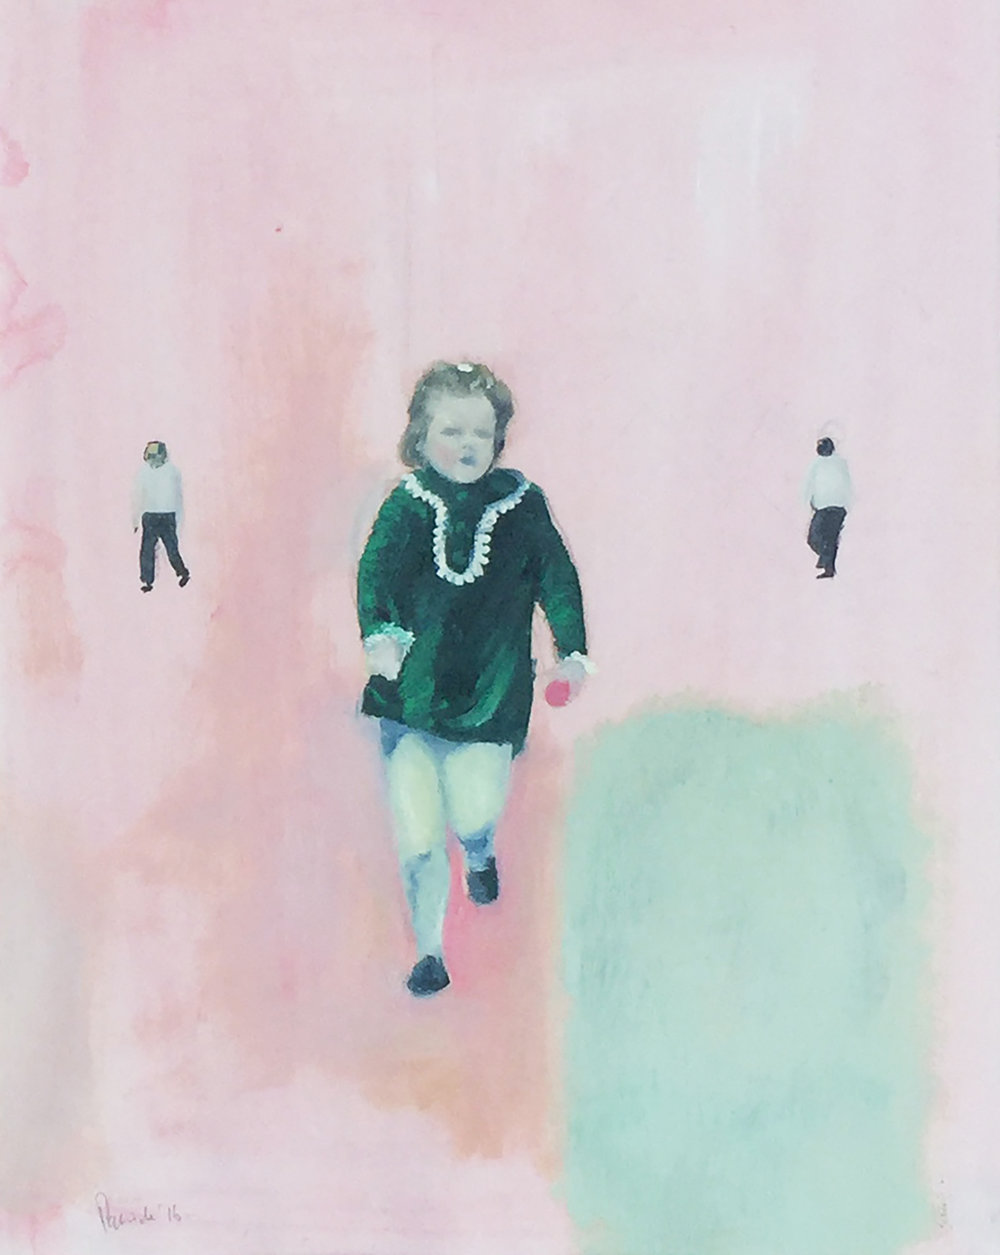 Running Child, Mixed media on paper, 52 x 72 cm, 2016